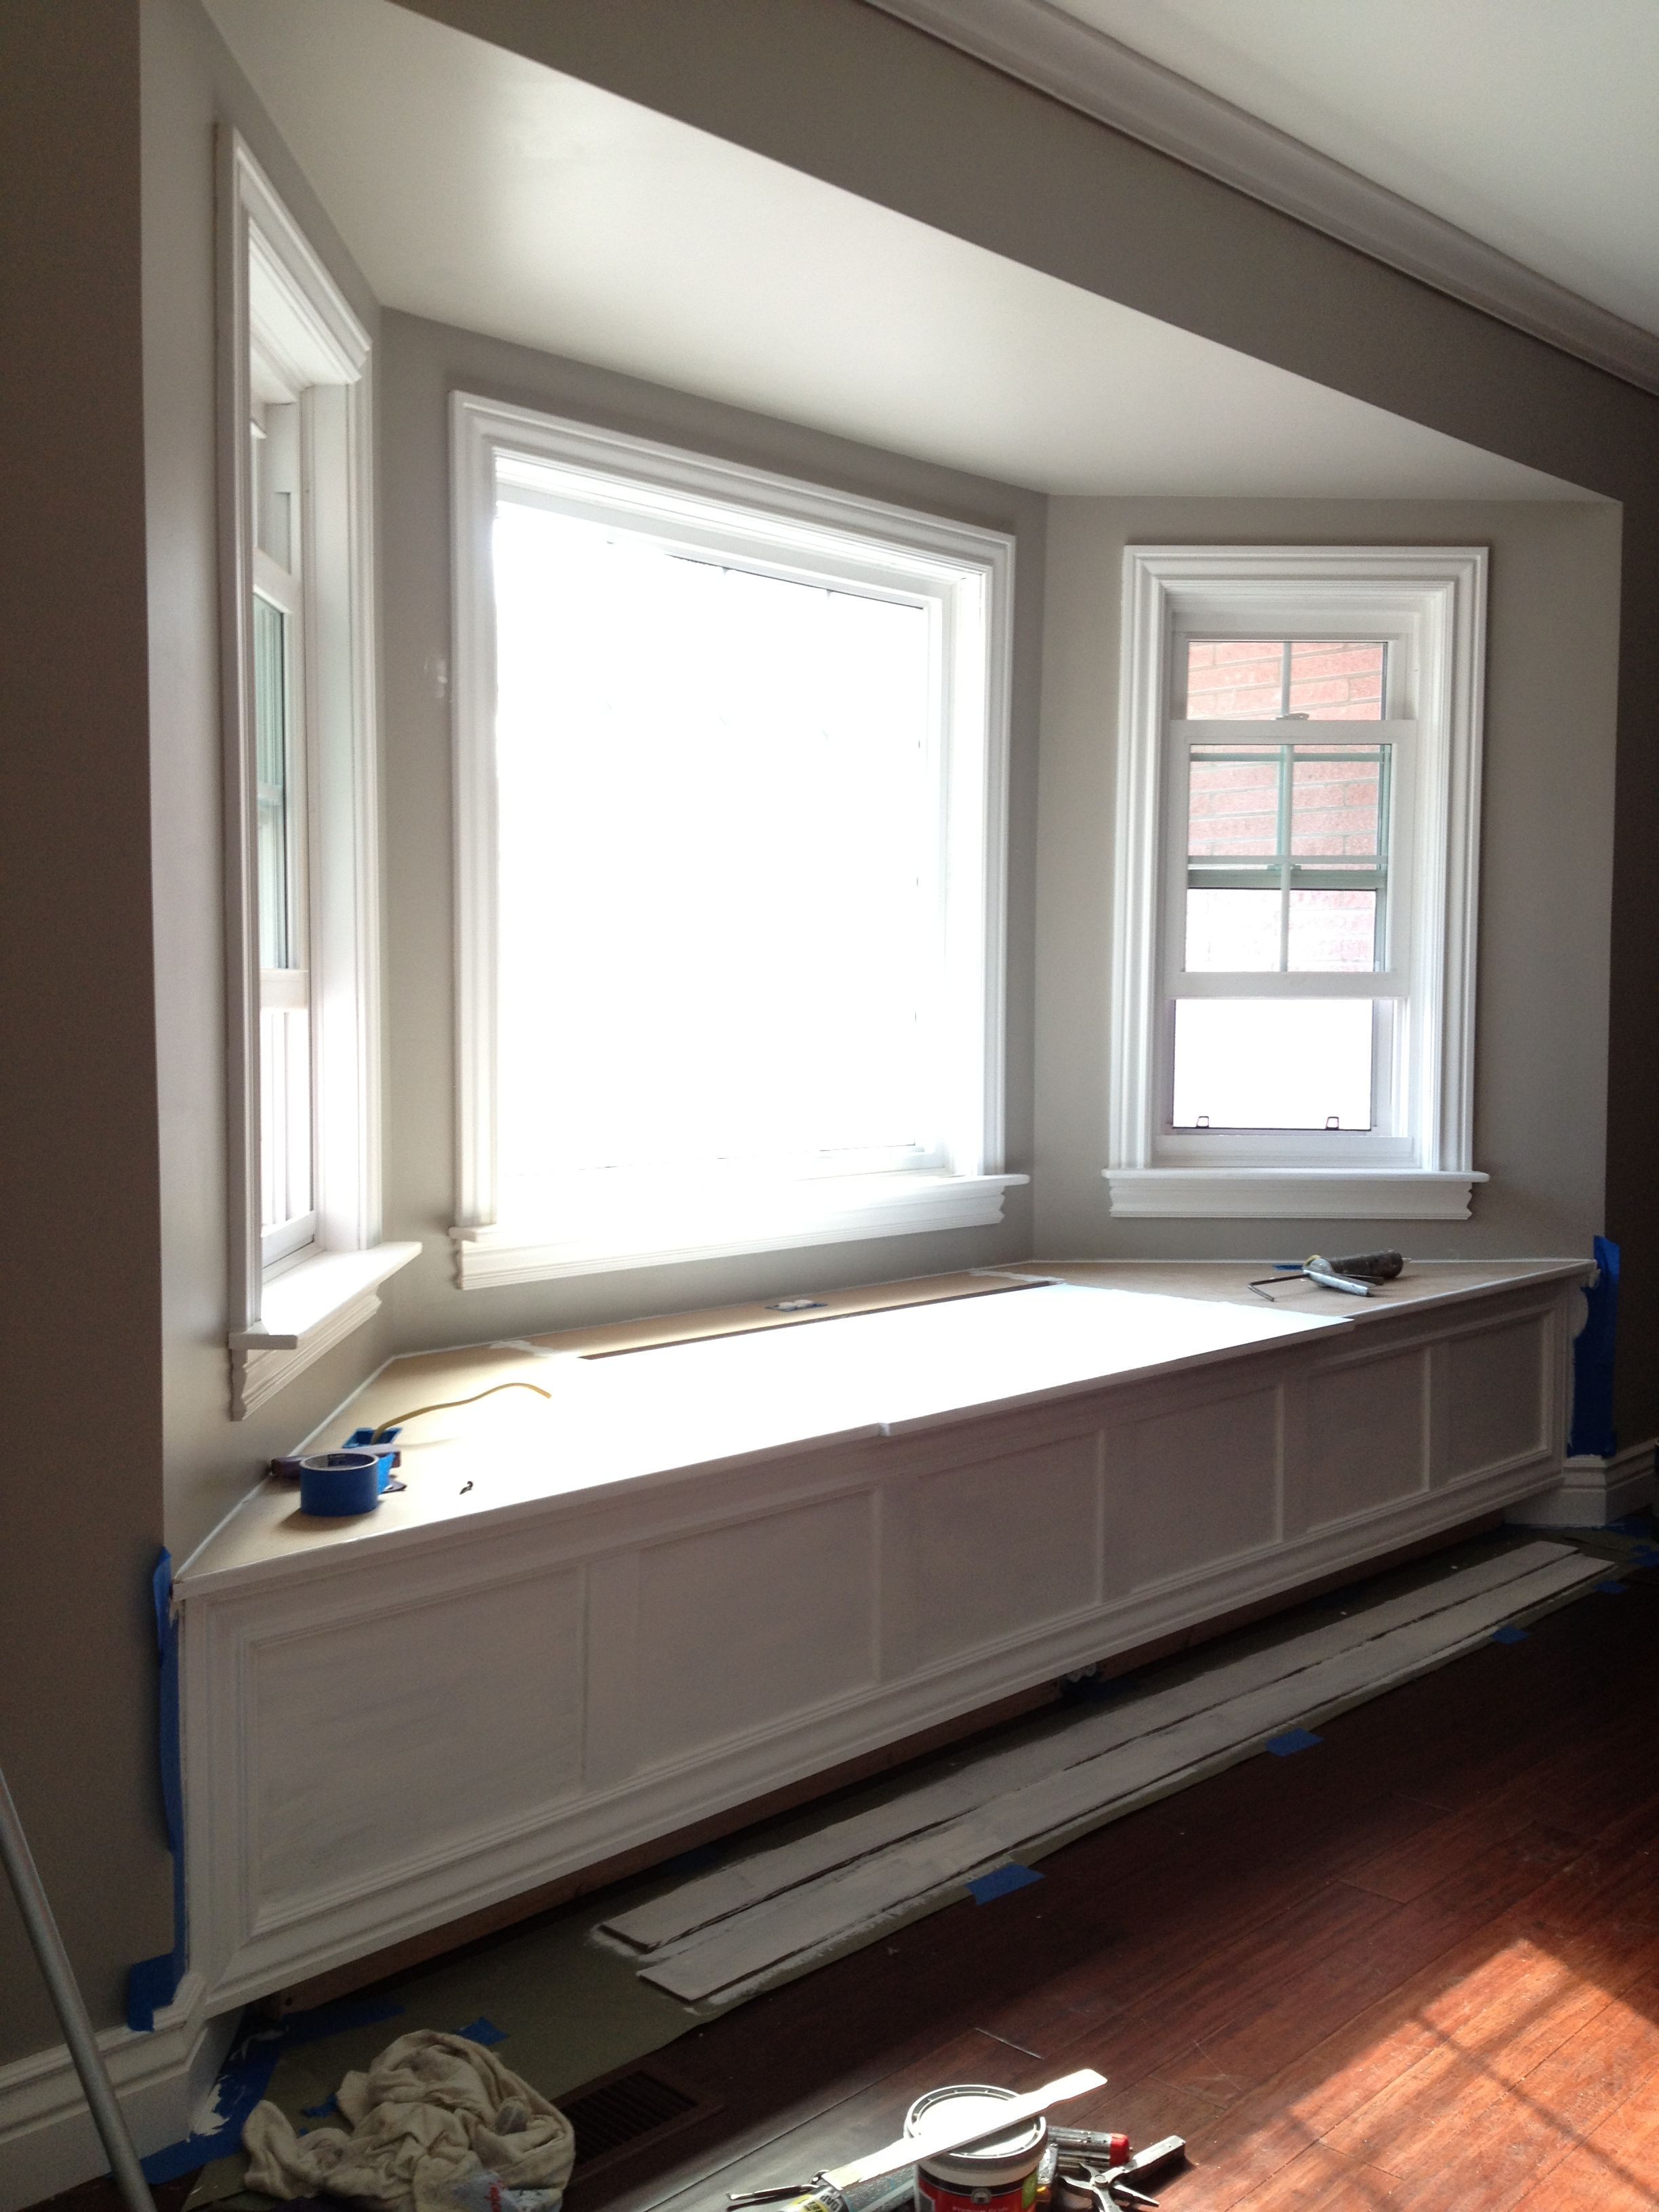 Bay Window Area Painted Lighter Than Surrounding Walls